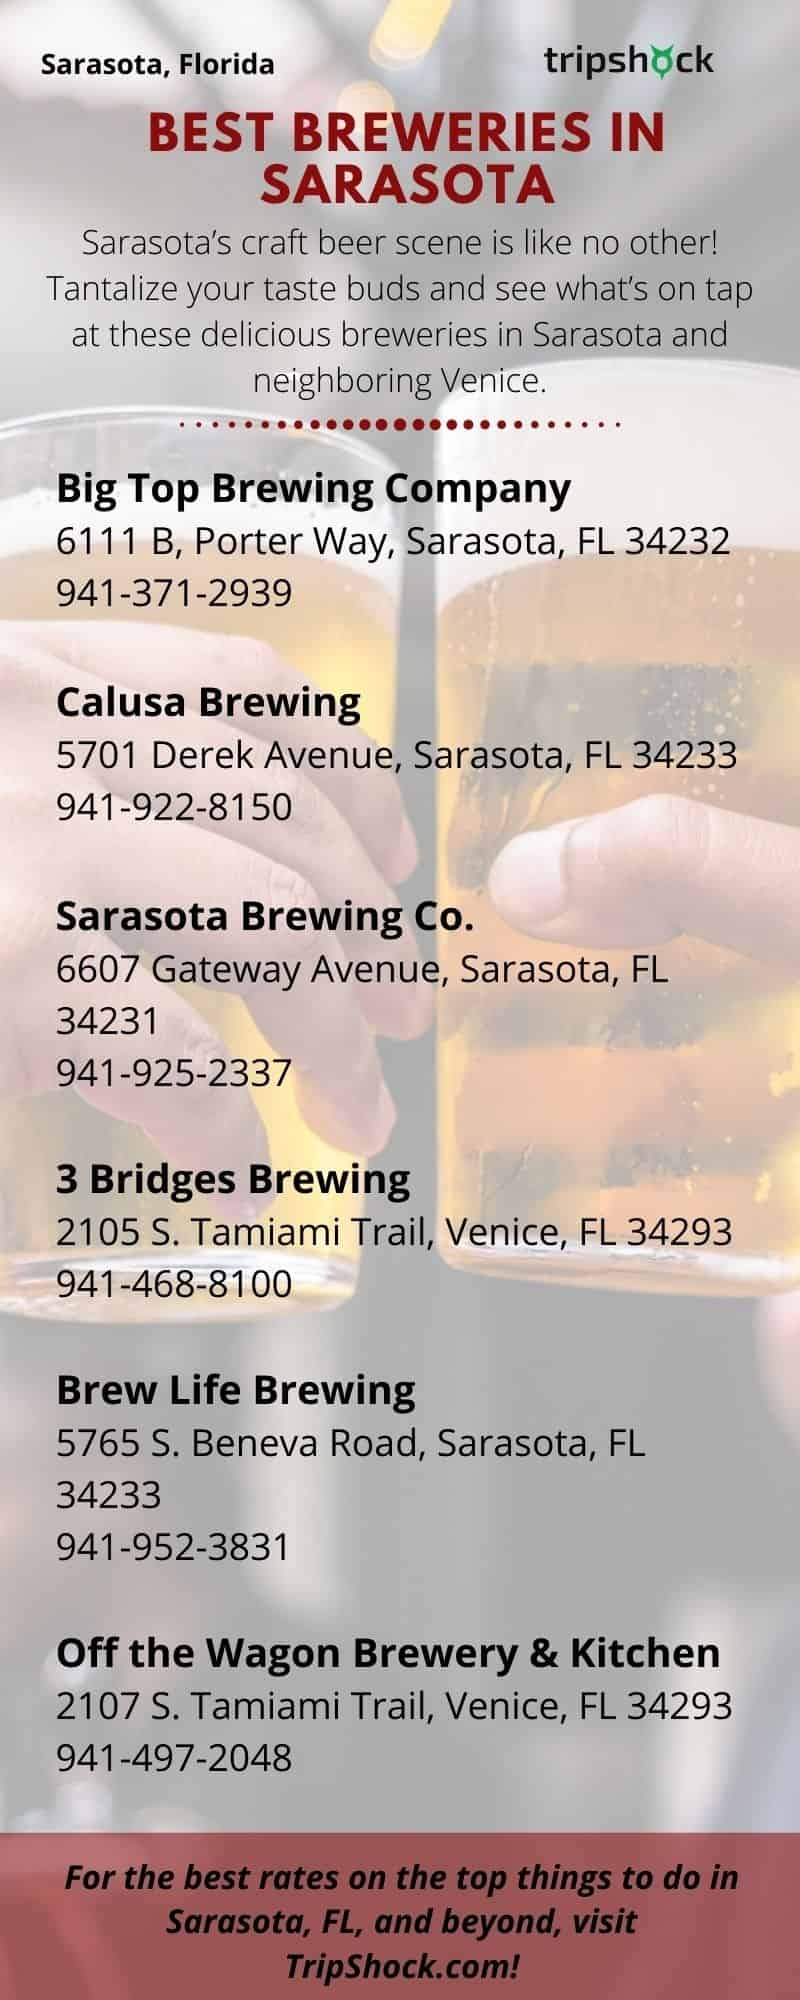 Best Breweries in Sarasota